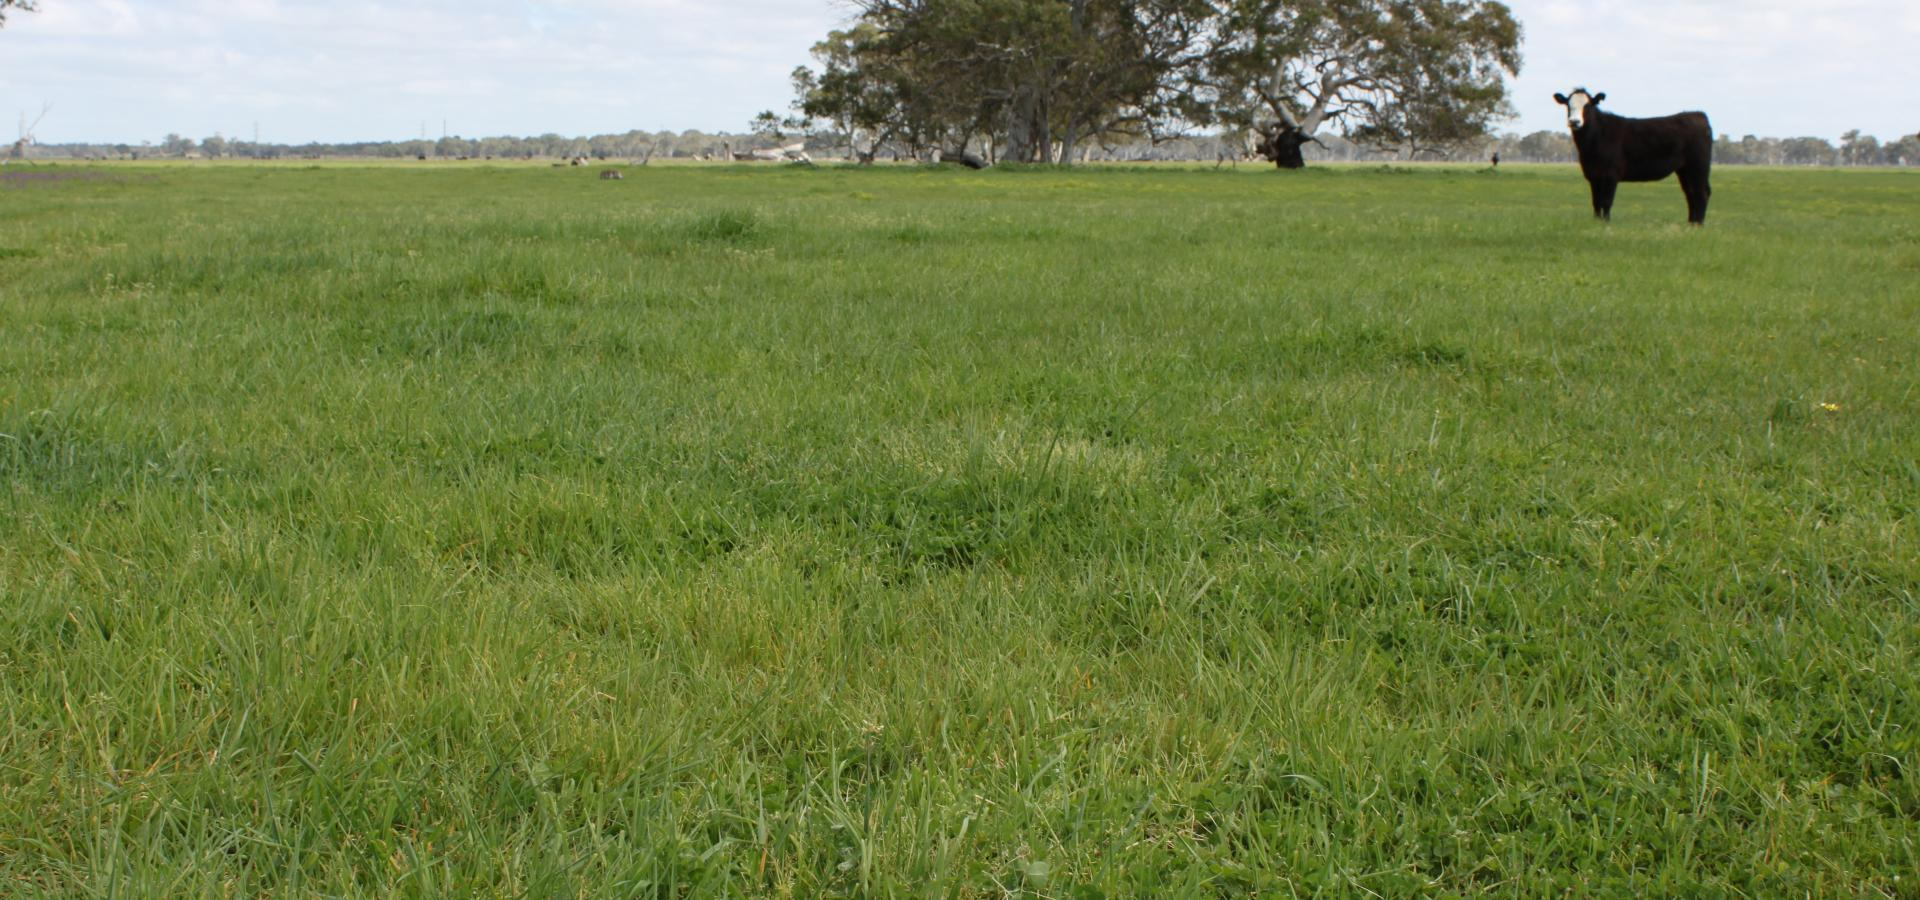 Prime Grazing Opportunity Seldom Offered